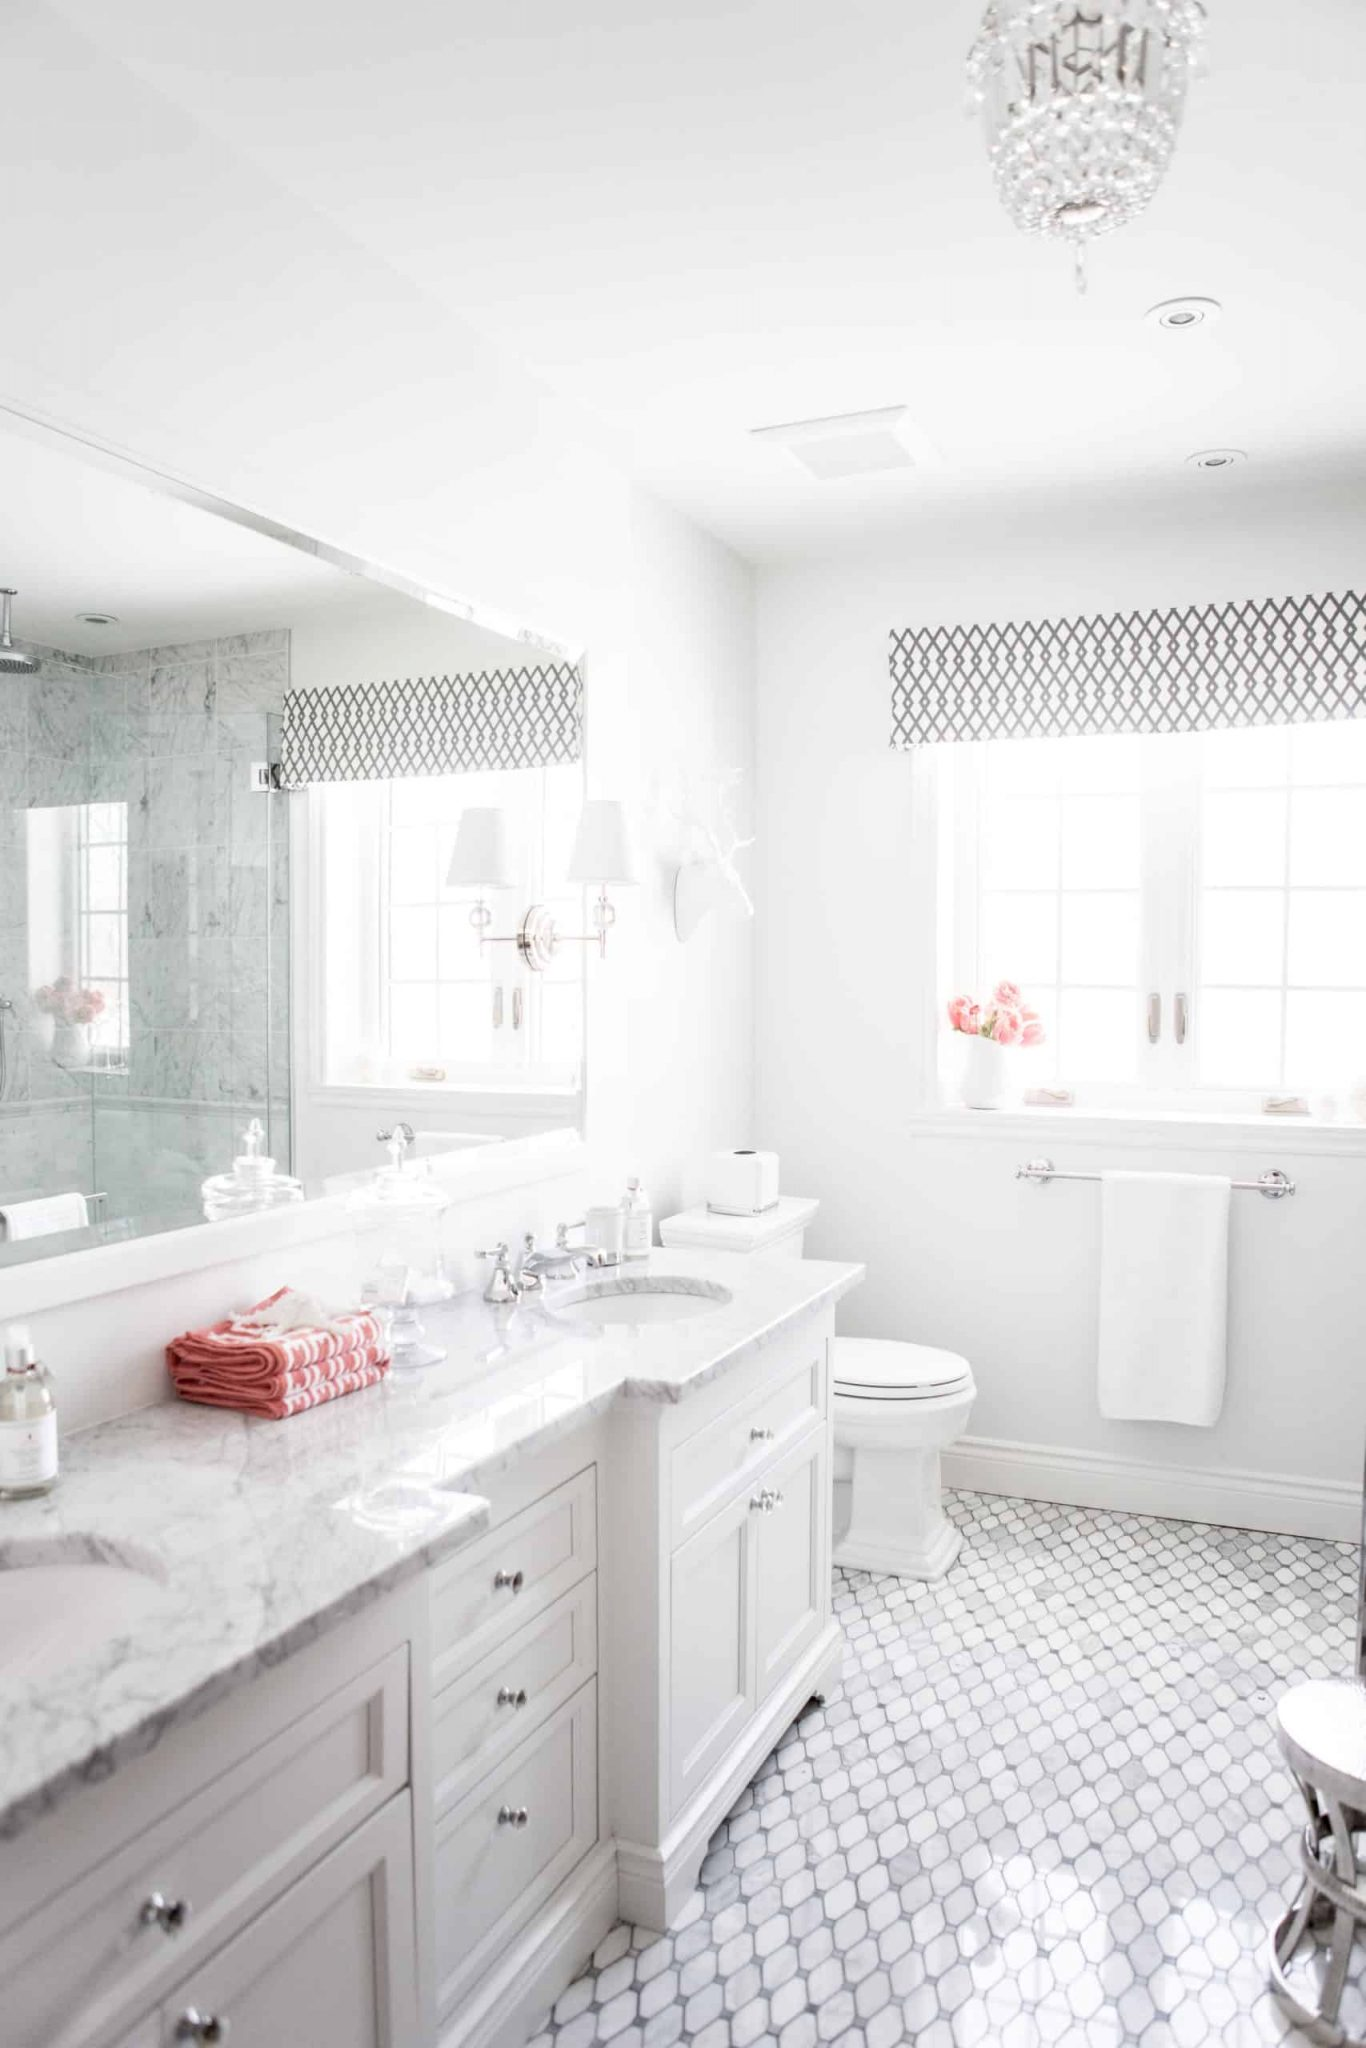 Bright white bathroom with a massive mirror above the double vanity